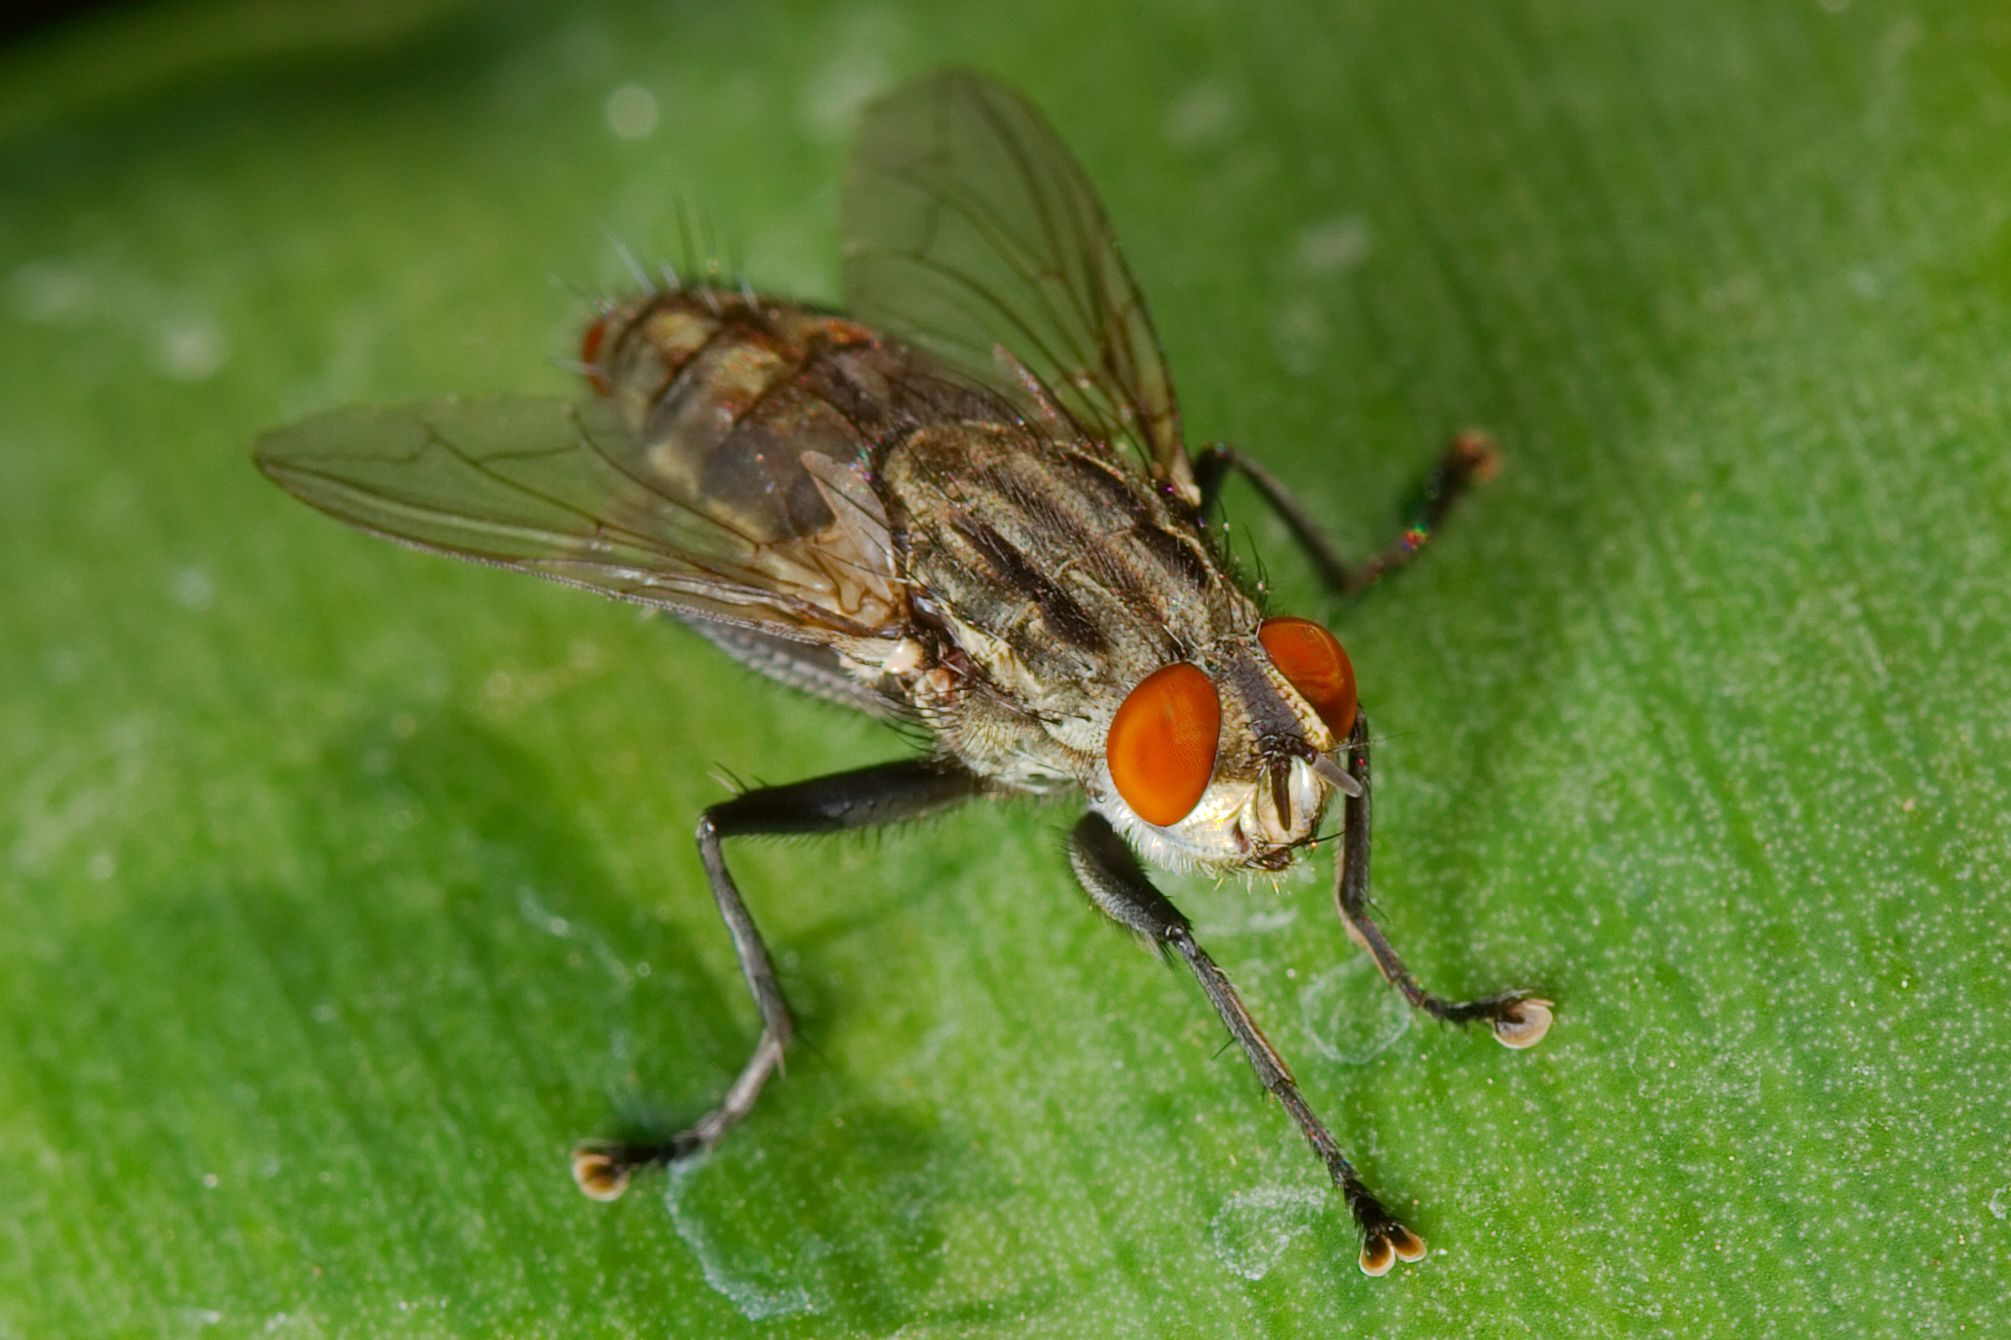 File:Sarcophagid fly macro.jpg - Wikimedia Commons